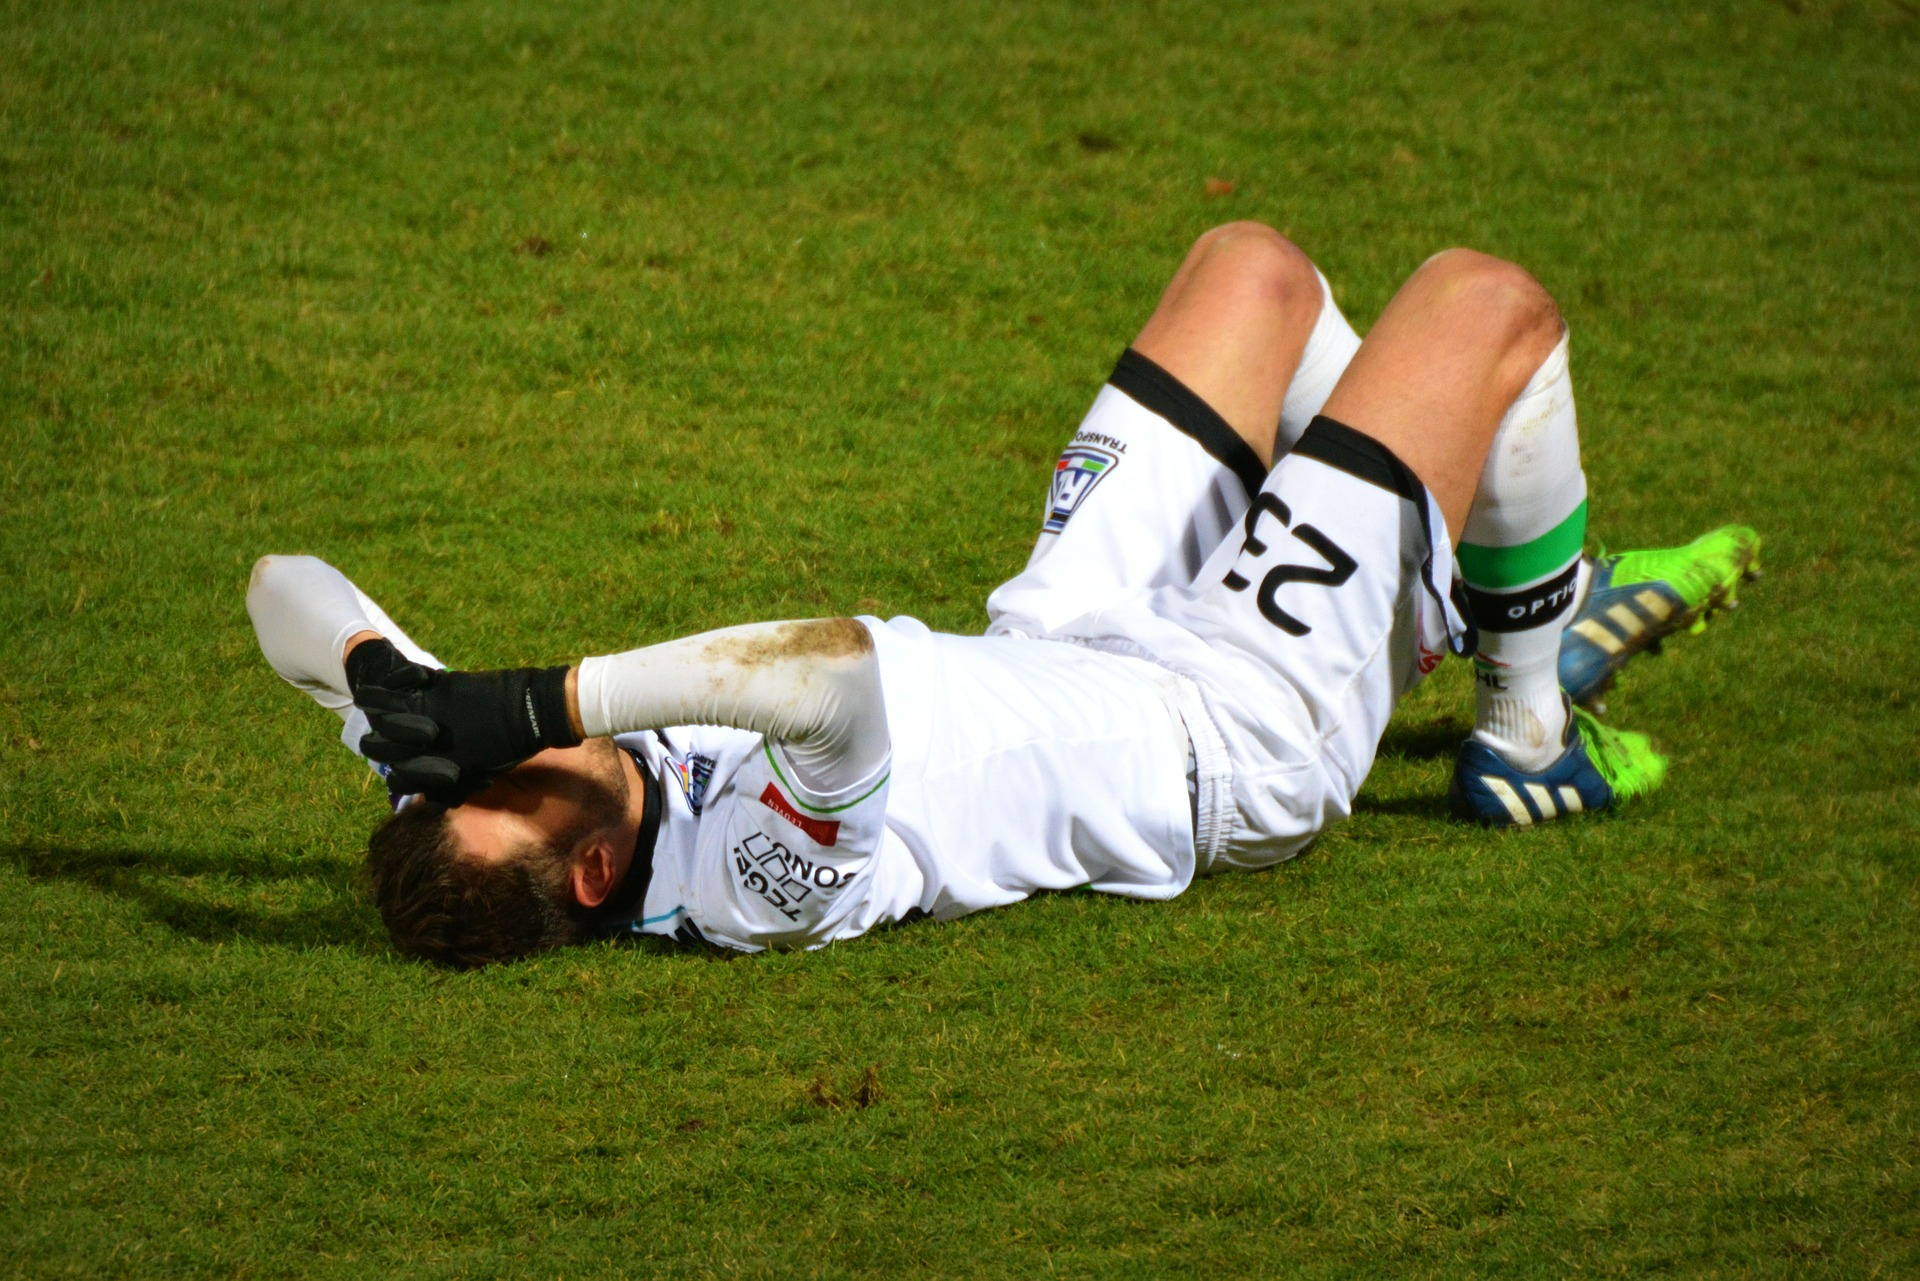 physical therapy for sports injury